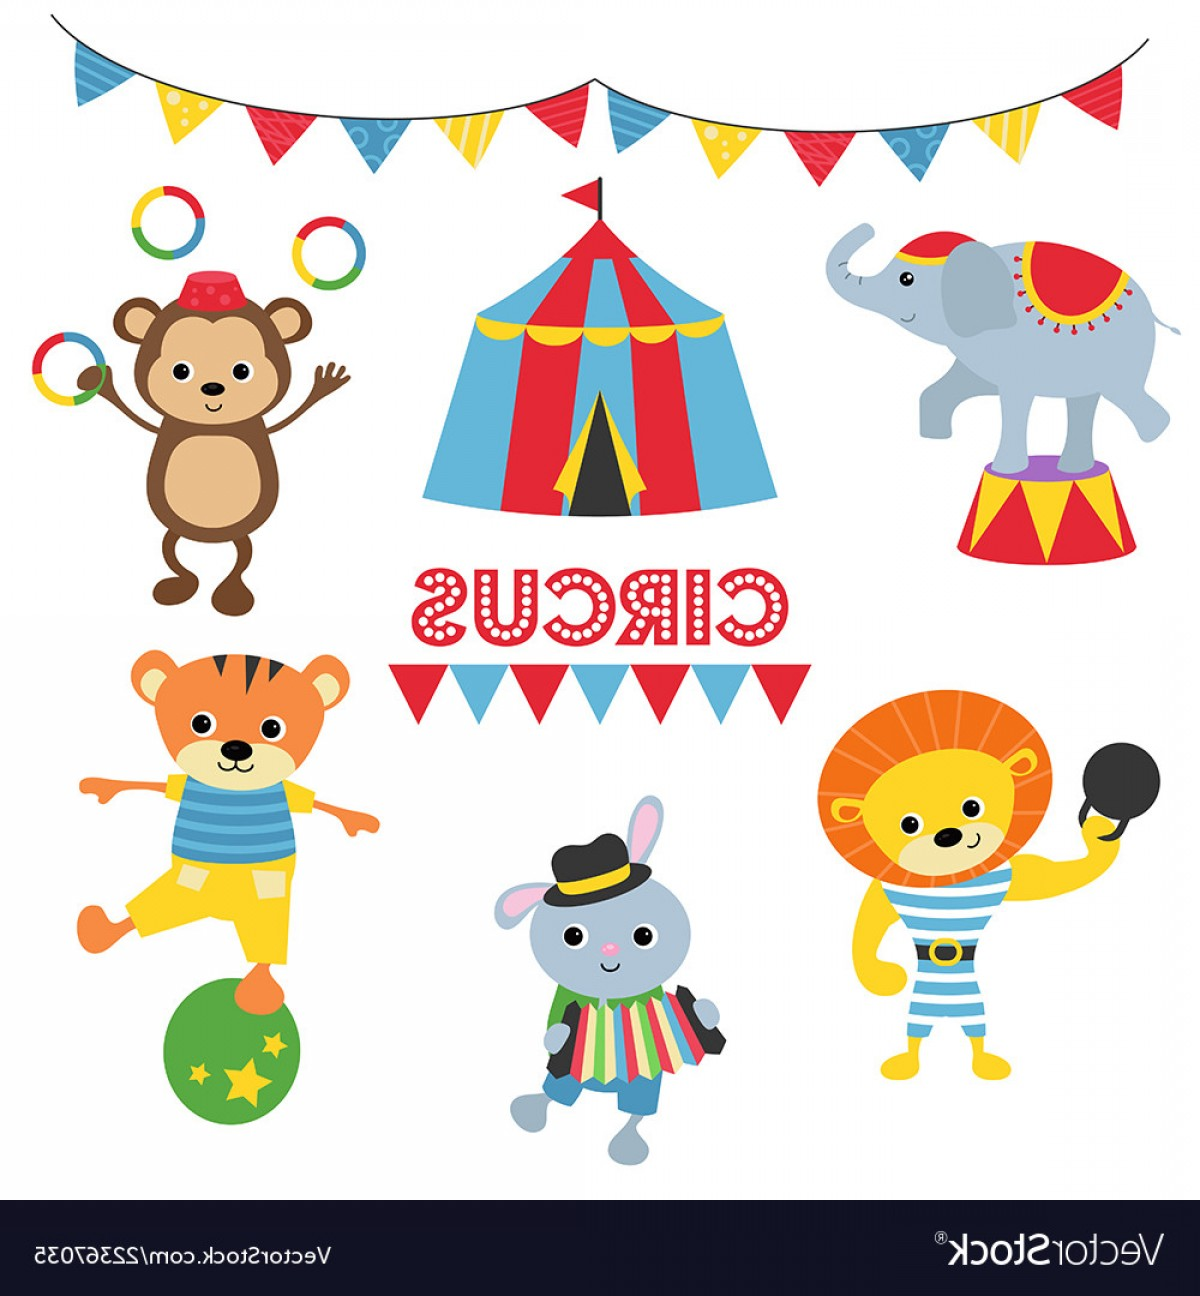 Circus Animals Vector Graphic: Set Of Circus Animals Set Of Circus Animals Vector